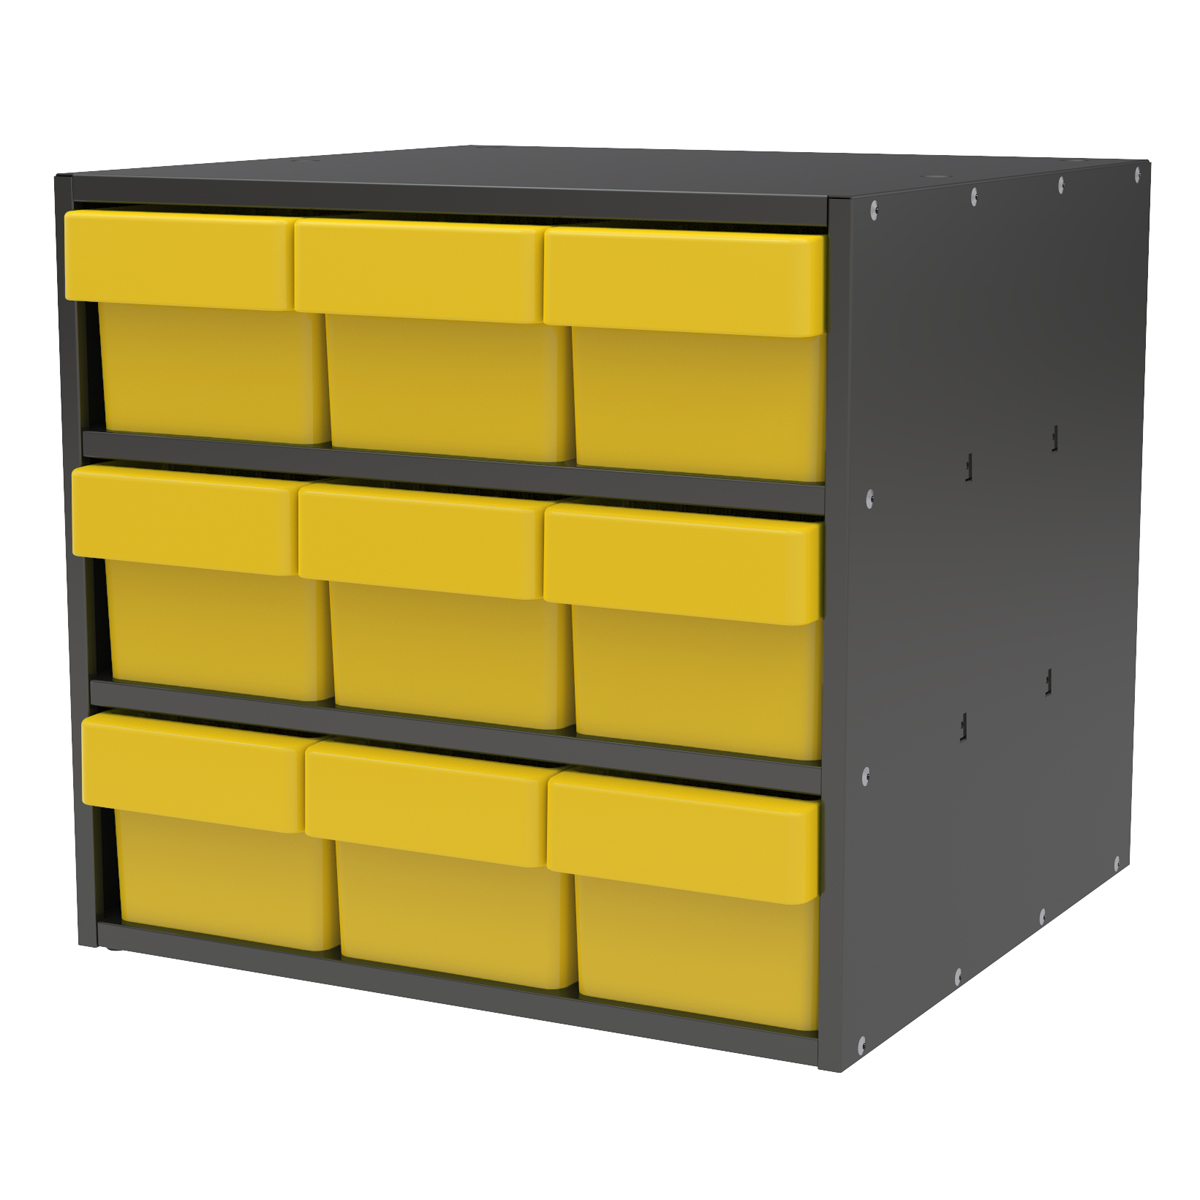 Item DISCONTINUED by Manufacturer.  Modular Cabinet, 18x17x16, 9 Drawers, Gray/Yellow (AD1817C68YEL).  This item sold in carton quantities of 1.